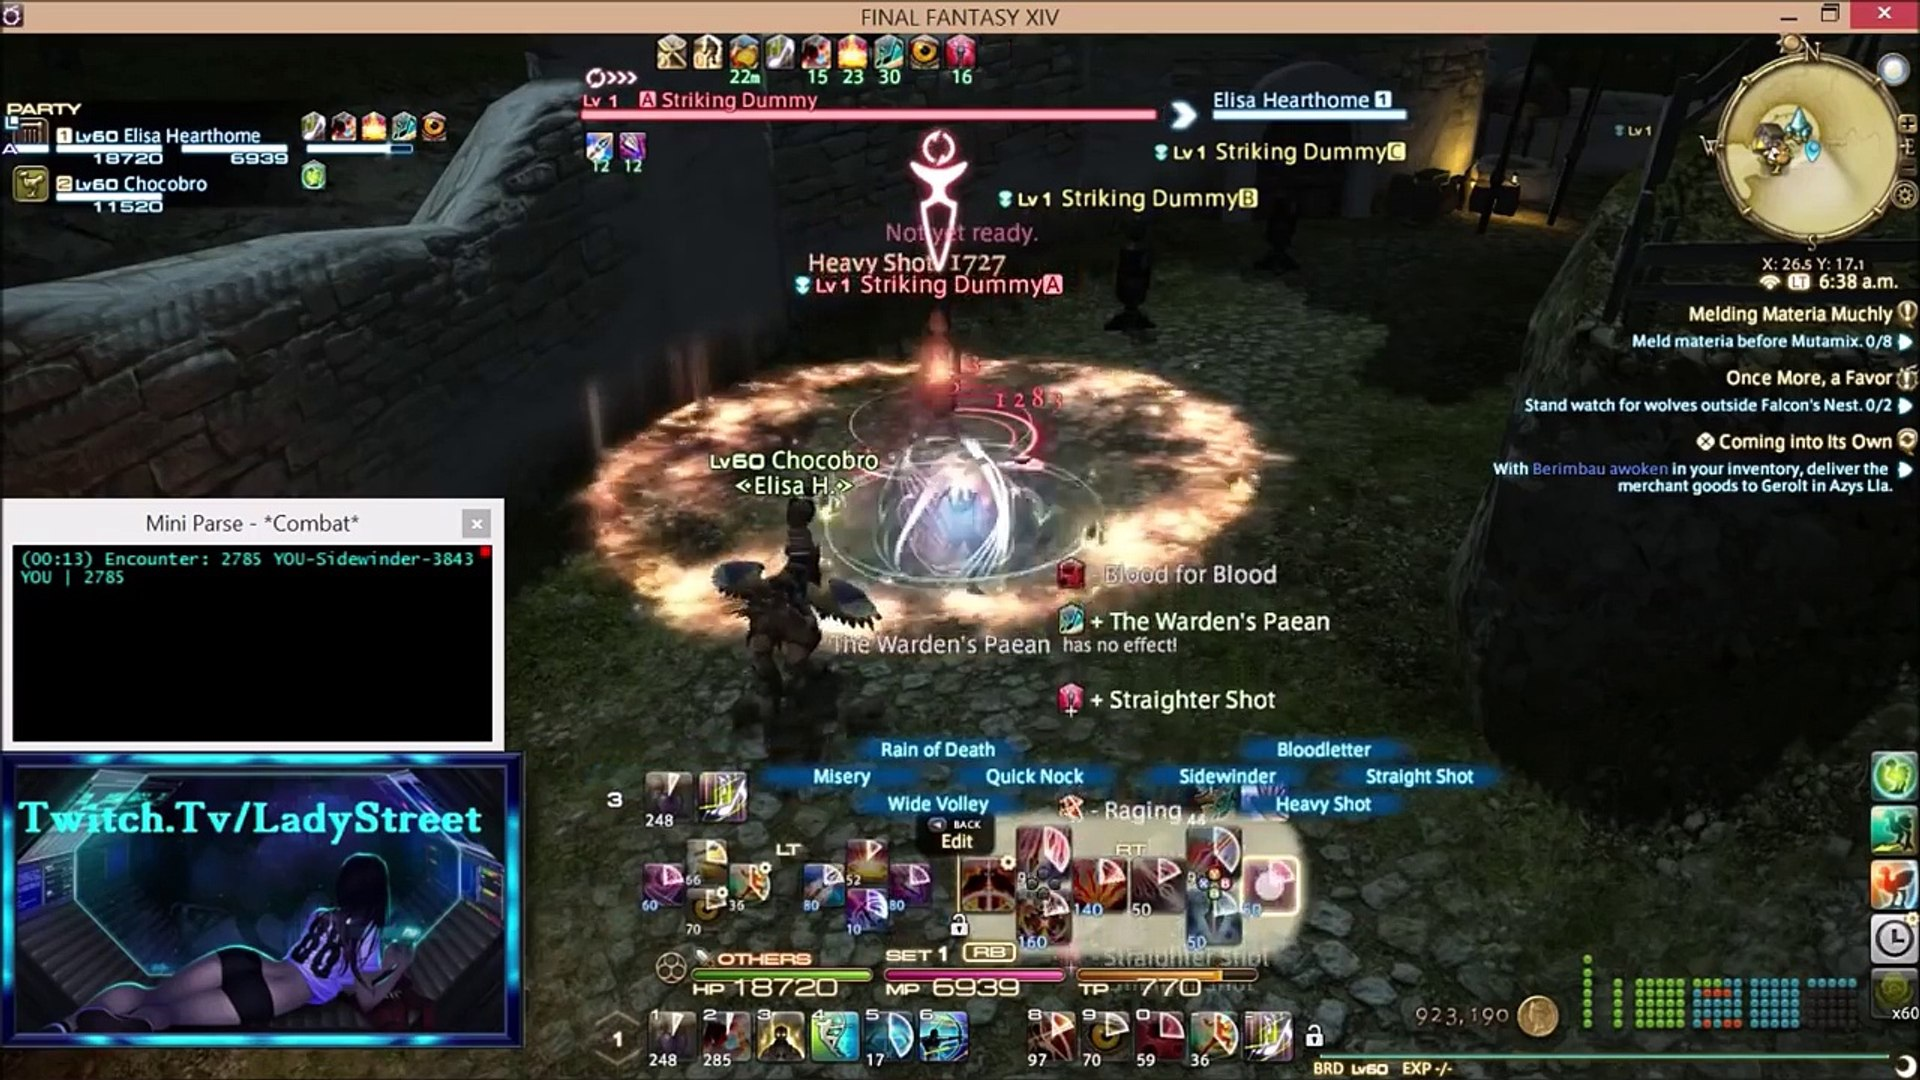 FFXIV, Bard Rotation 1550dps+ No Misery Ends! April/11/2016